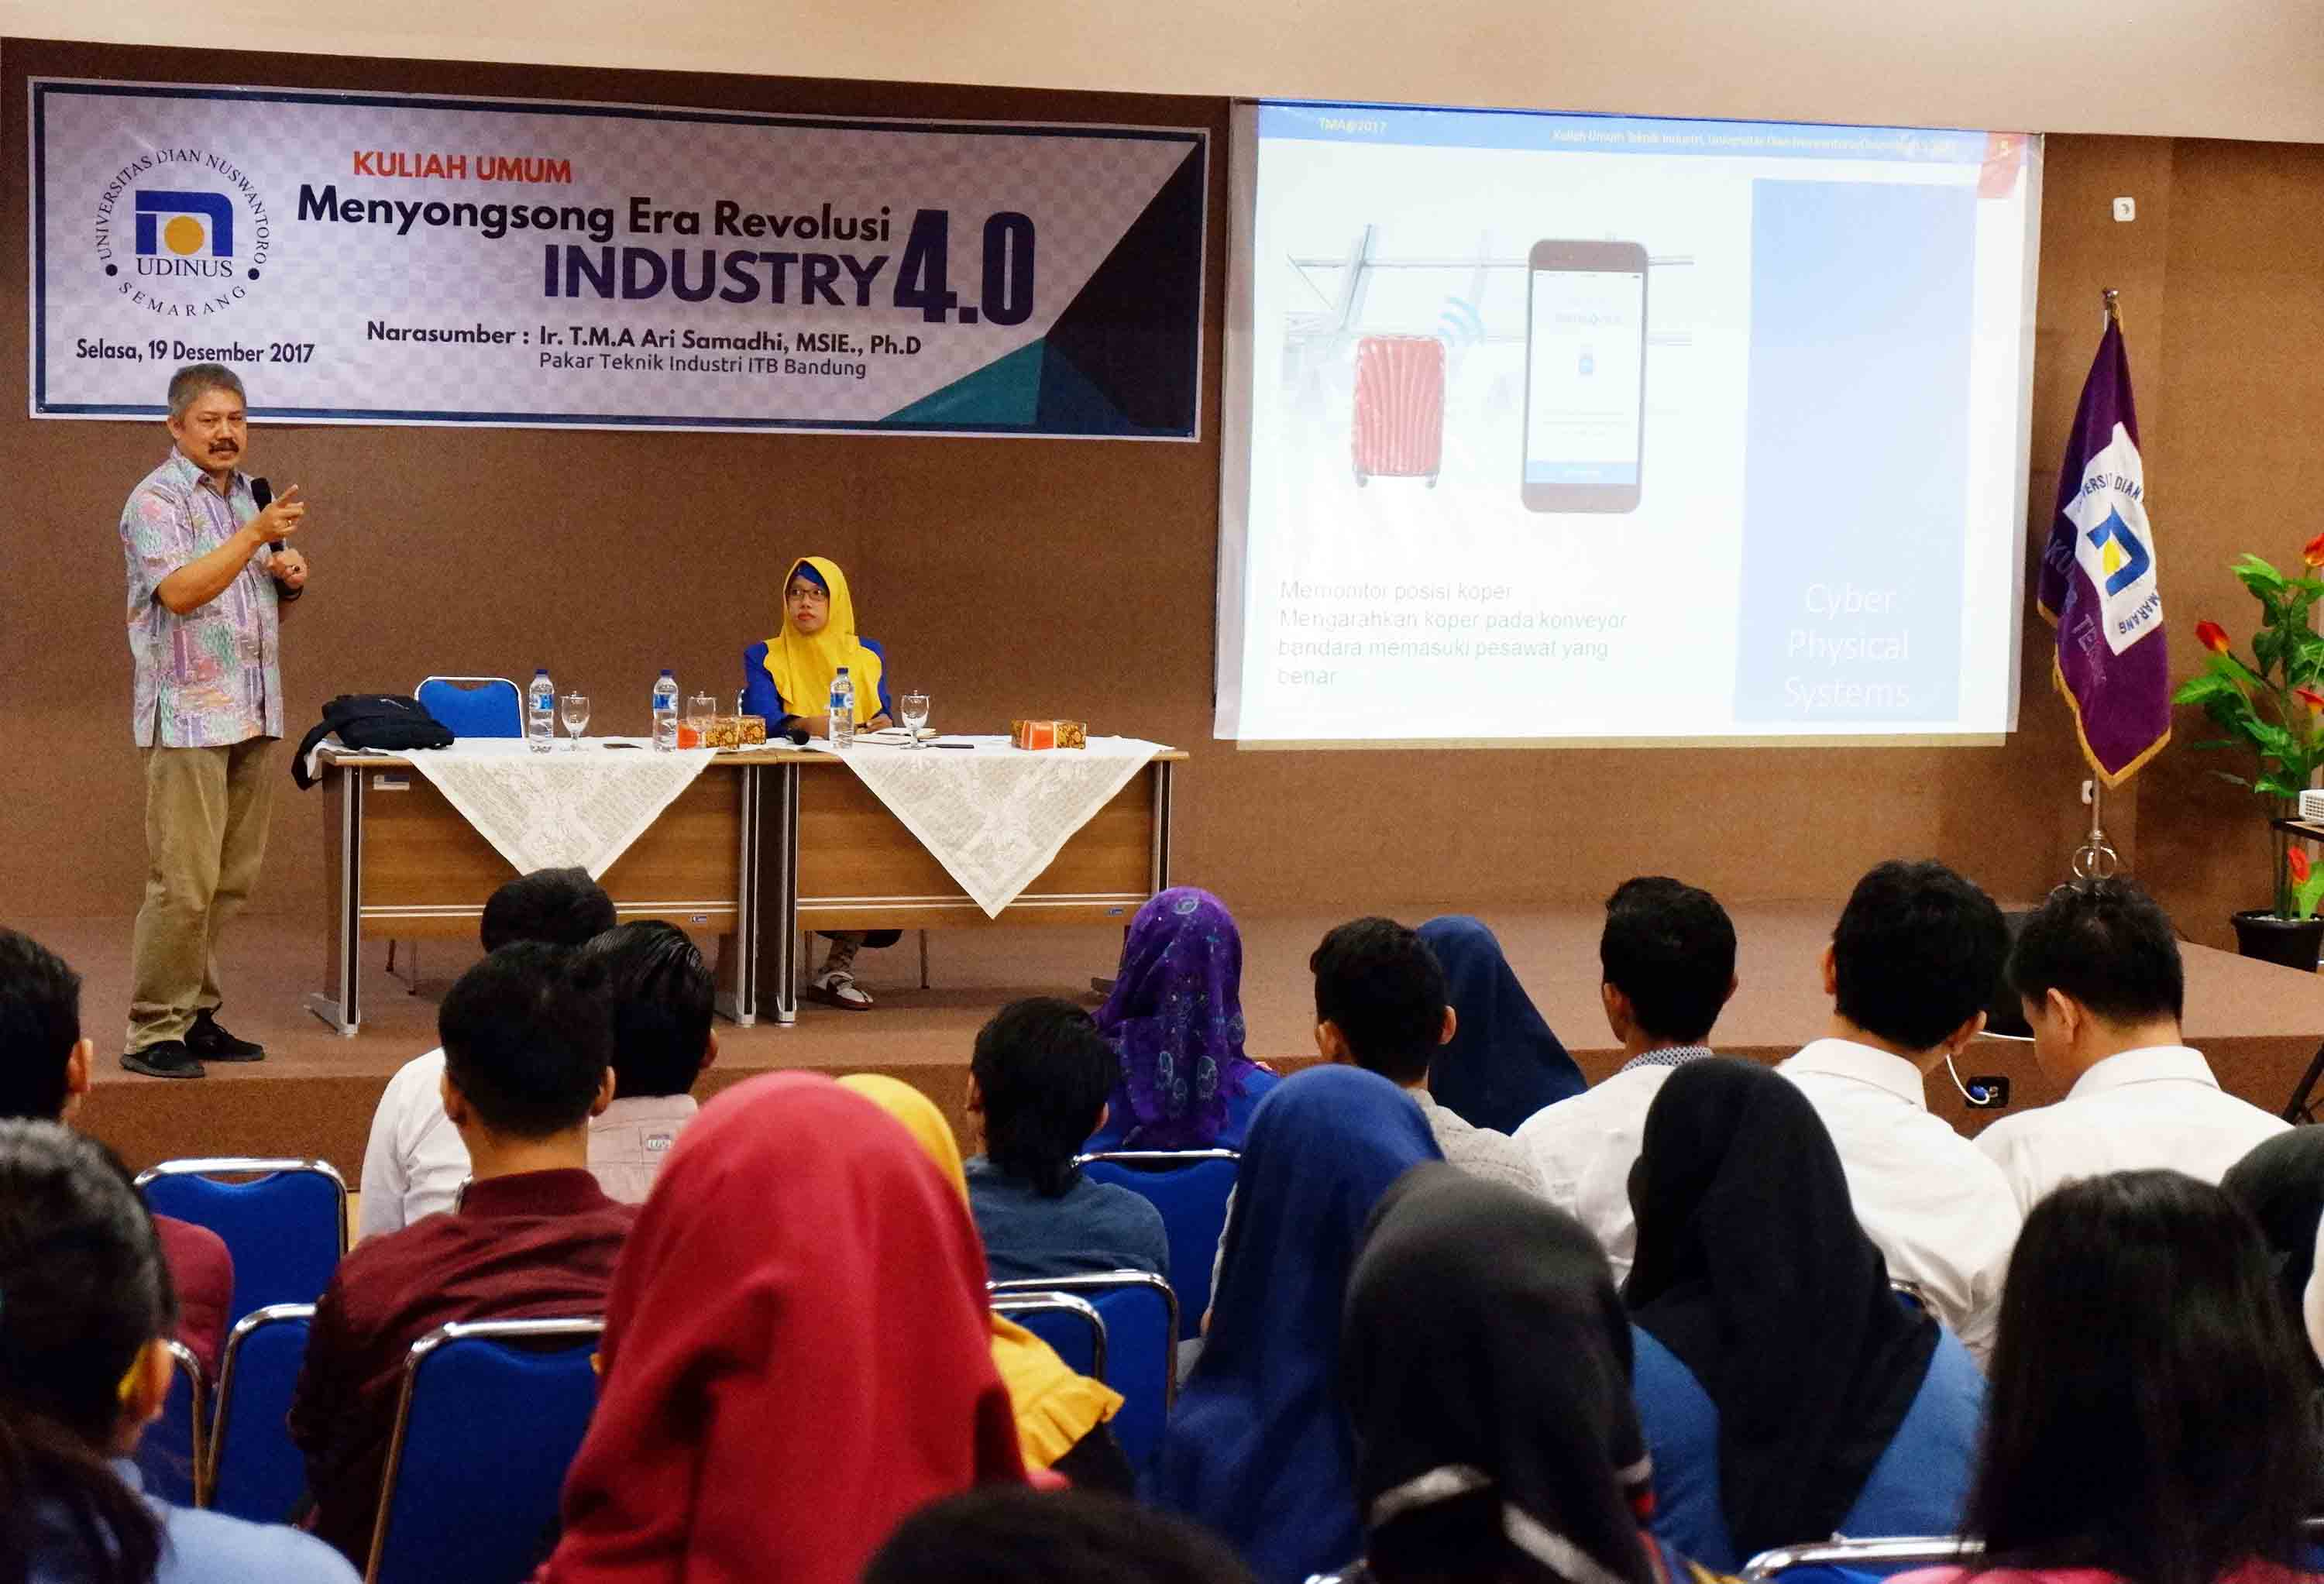 AN EXPERT OF INDUSTRIAL ENGINEERING FROM ITB MOTIVATES STUDENTS OF THE FACULTY OF ENGINEERING UDINUS